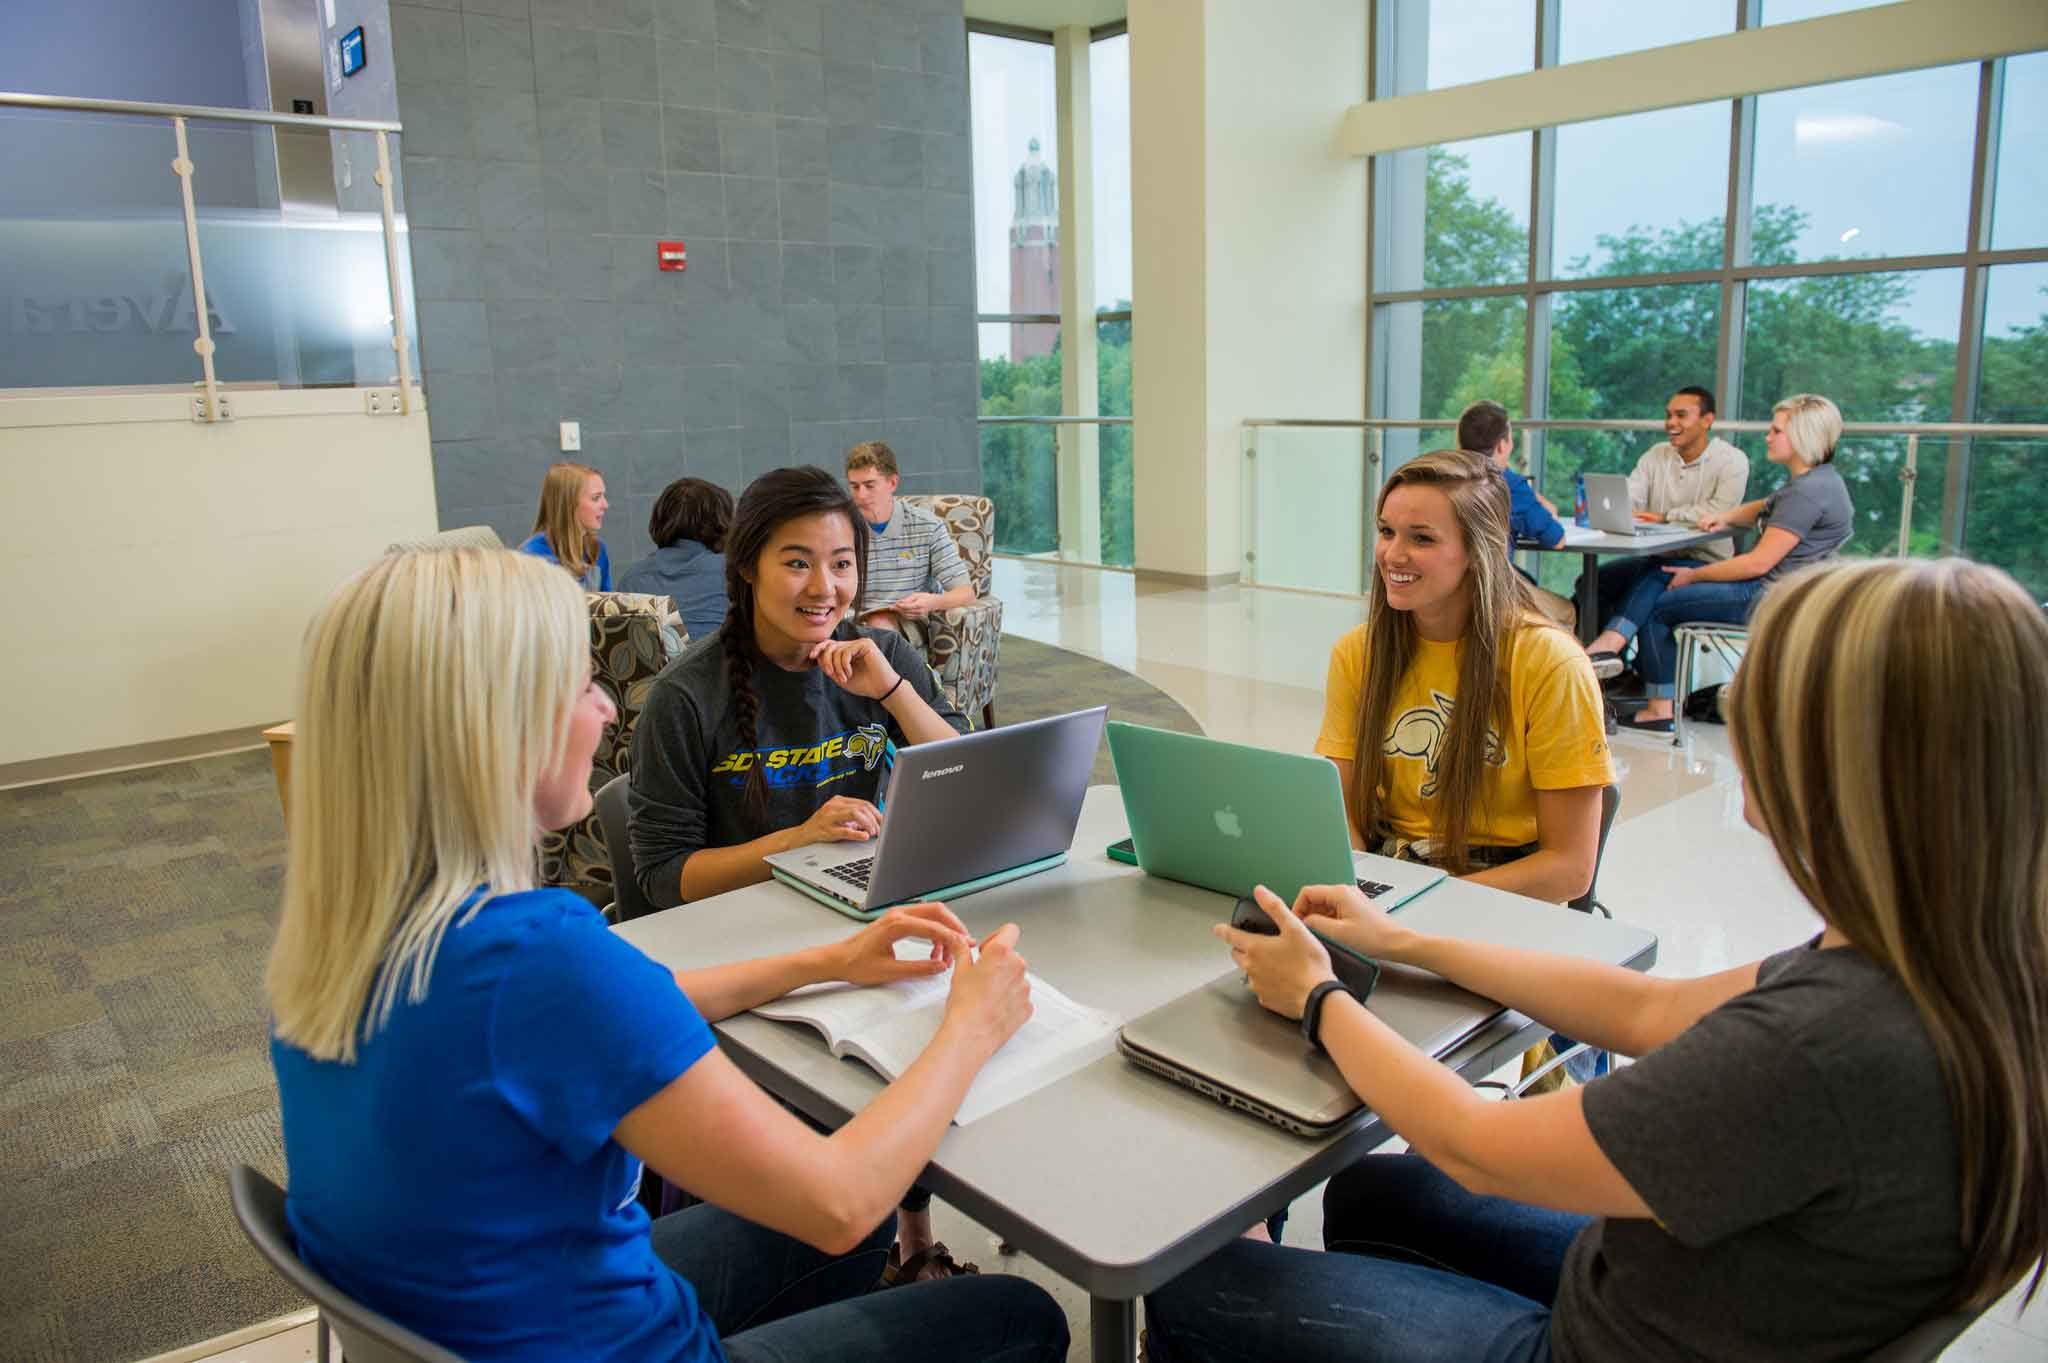 Students at table in Avera building lounge